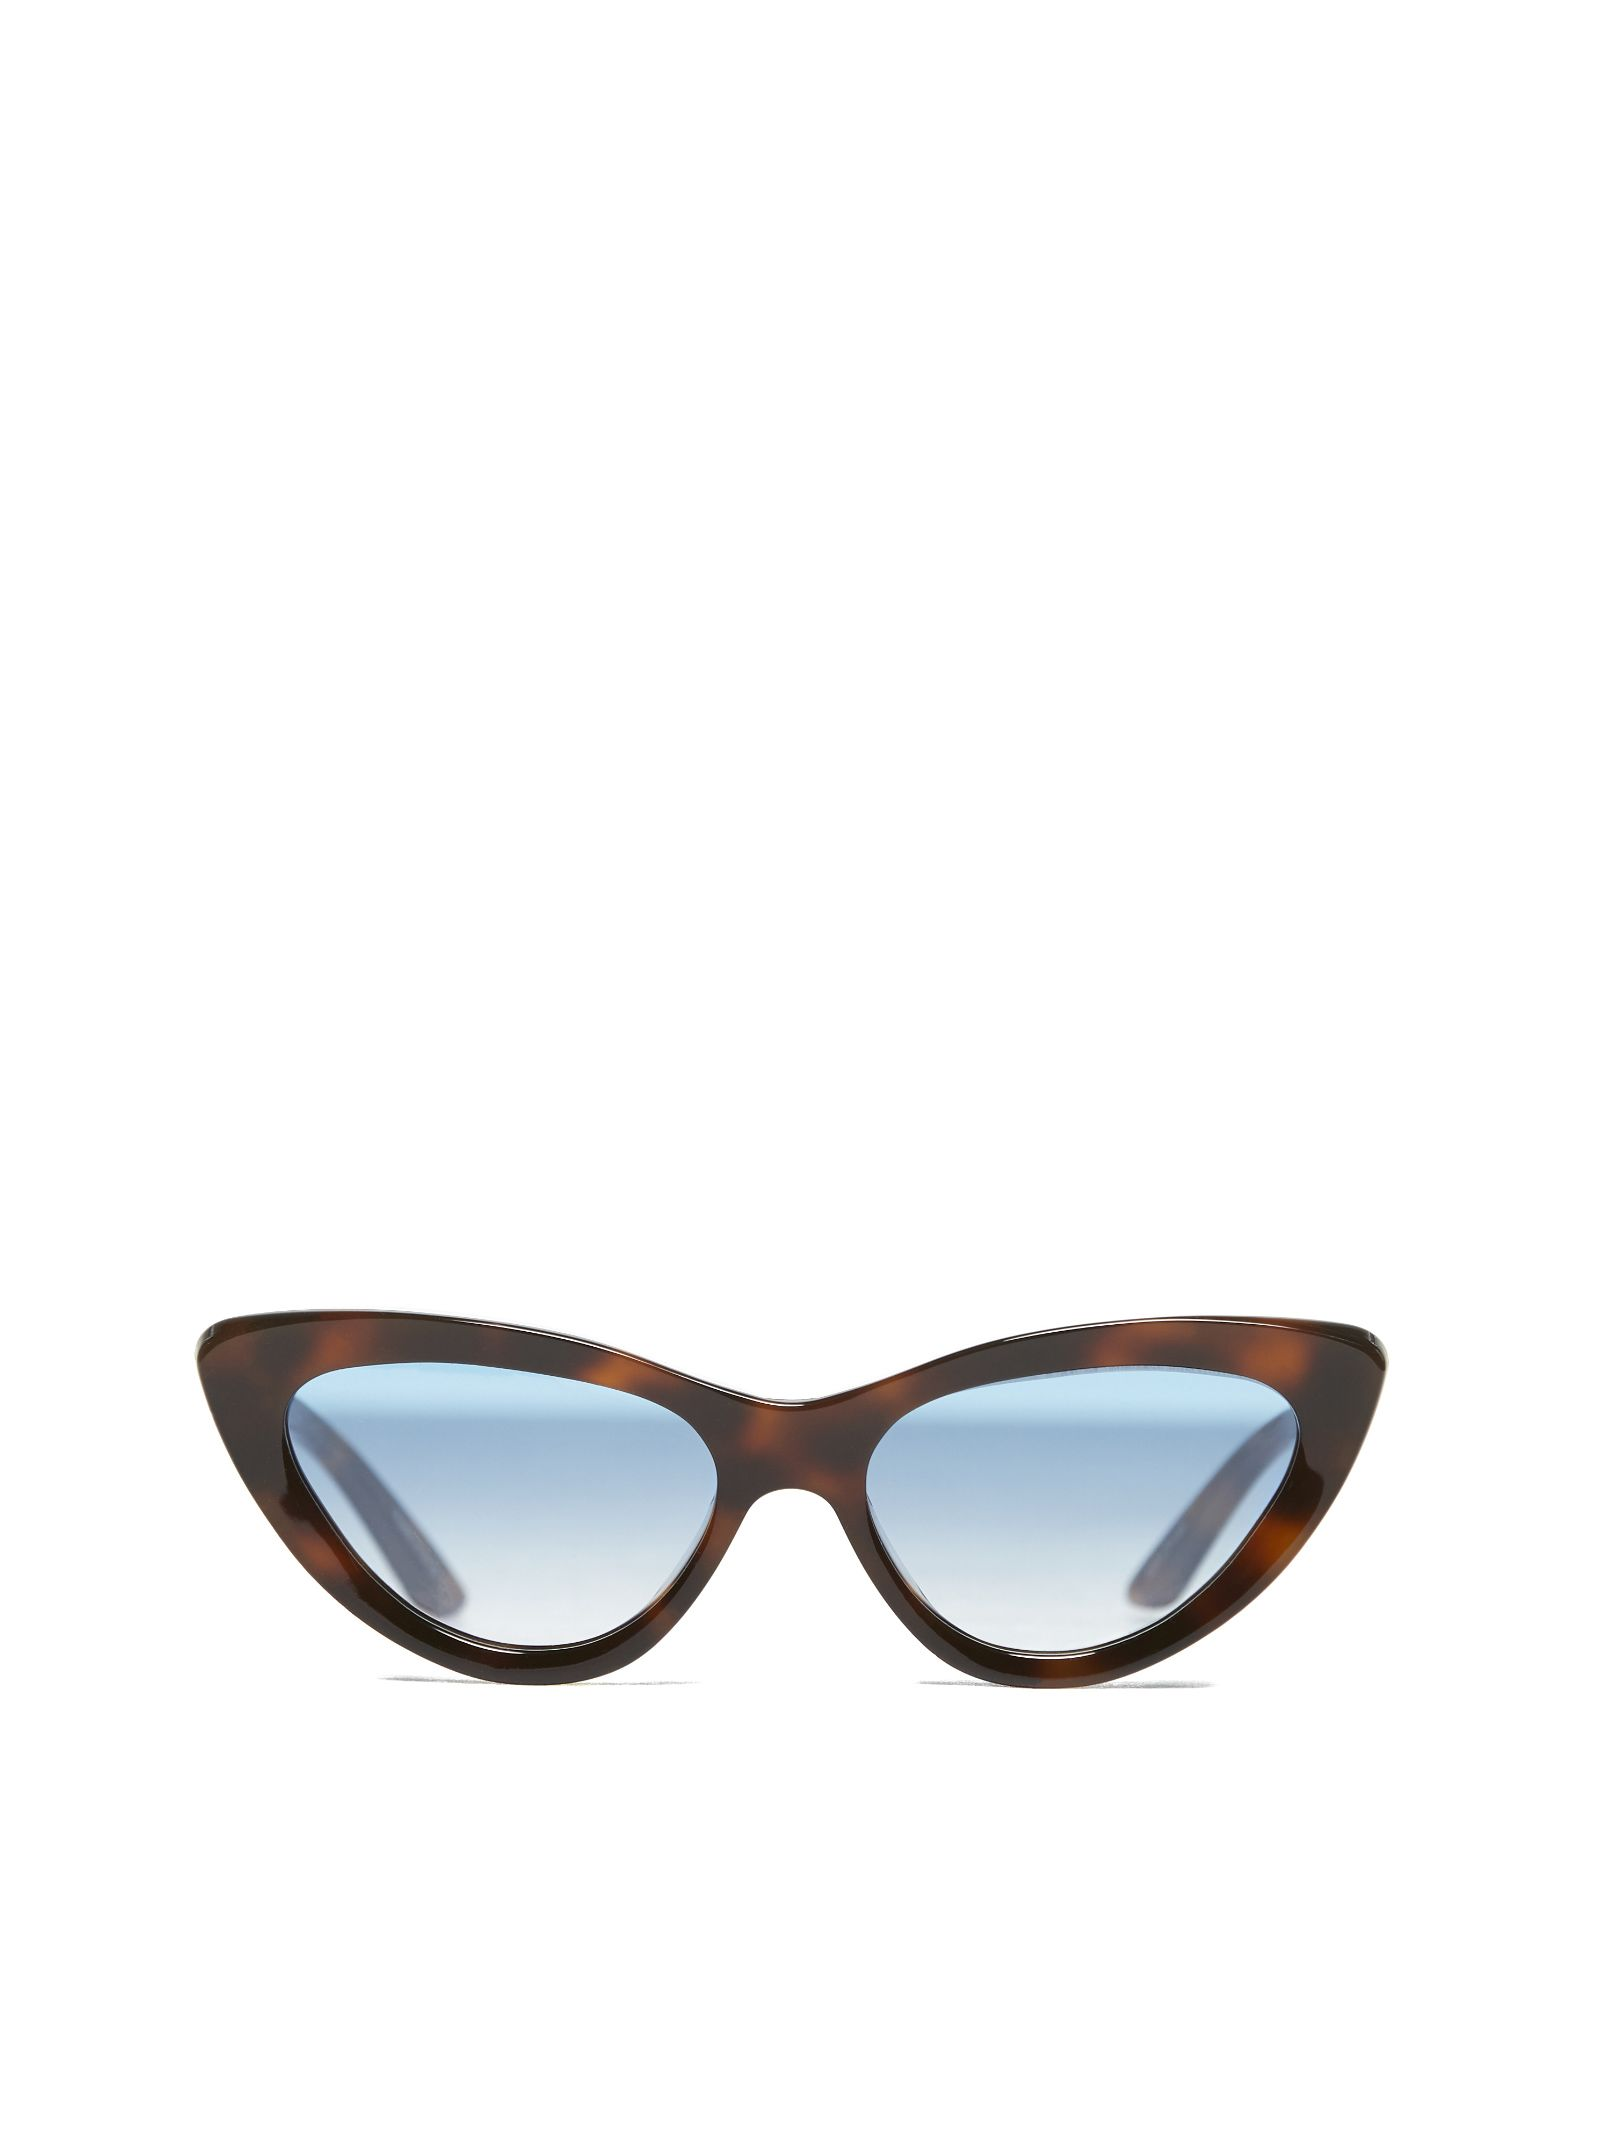 Christian Roth Spotted Sunglasses